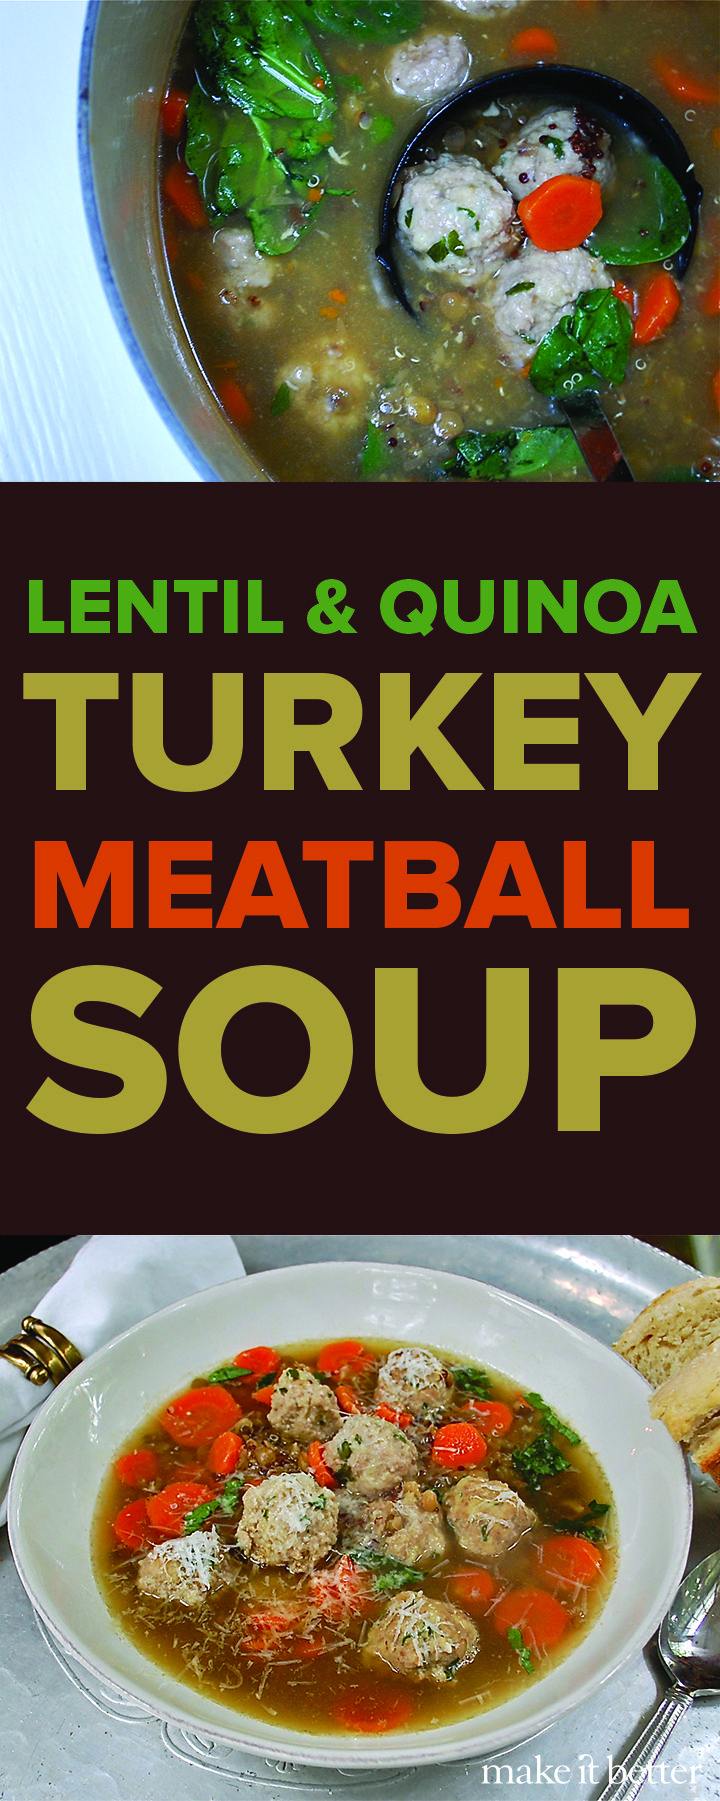 Lentil & Quinoa Turkey Meatball Soup Recipe — filling, flavorful and healthy — and, bonus, there's only one pot to clean!